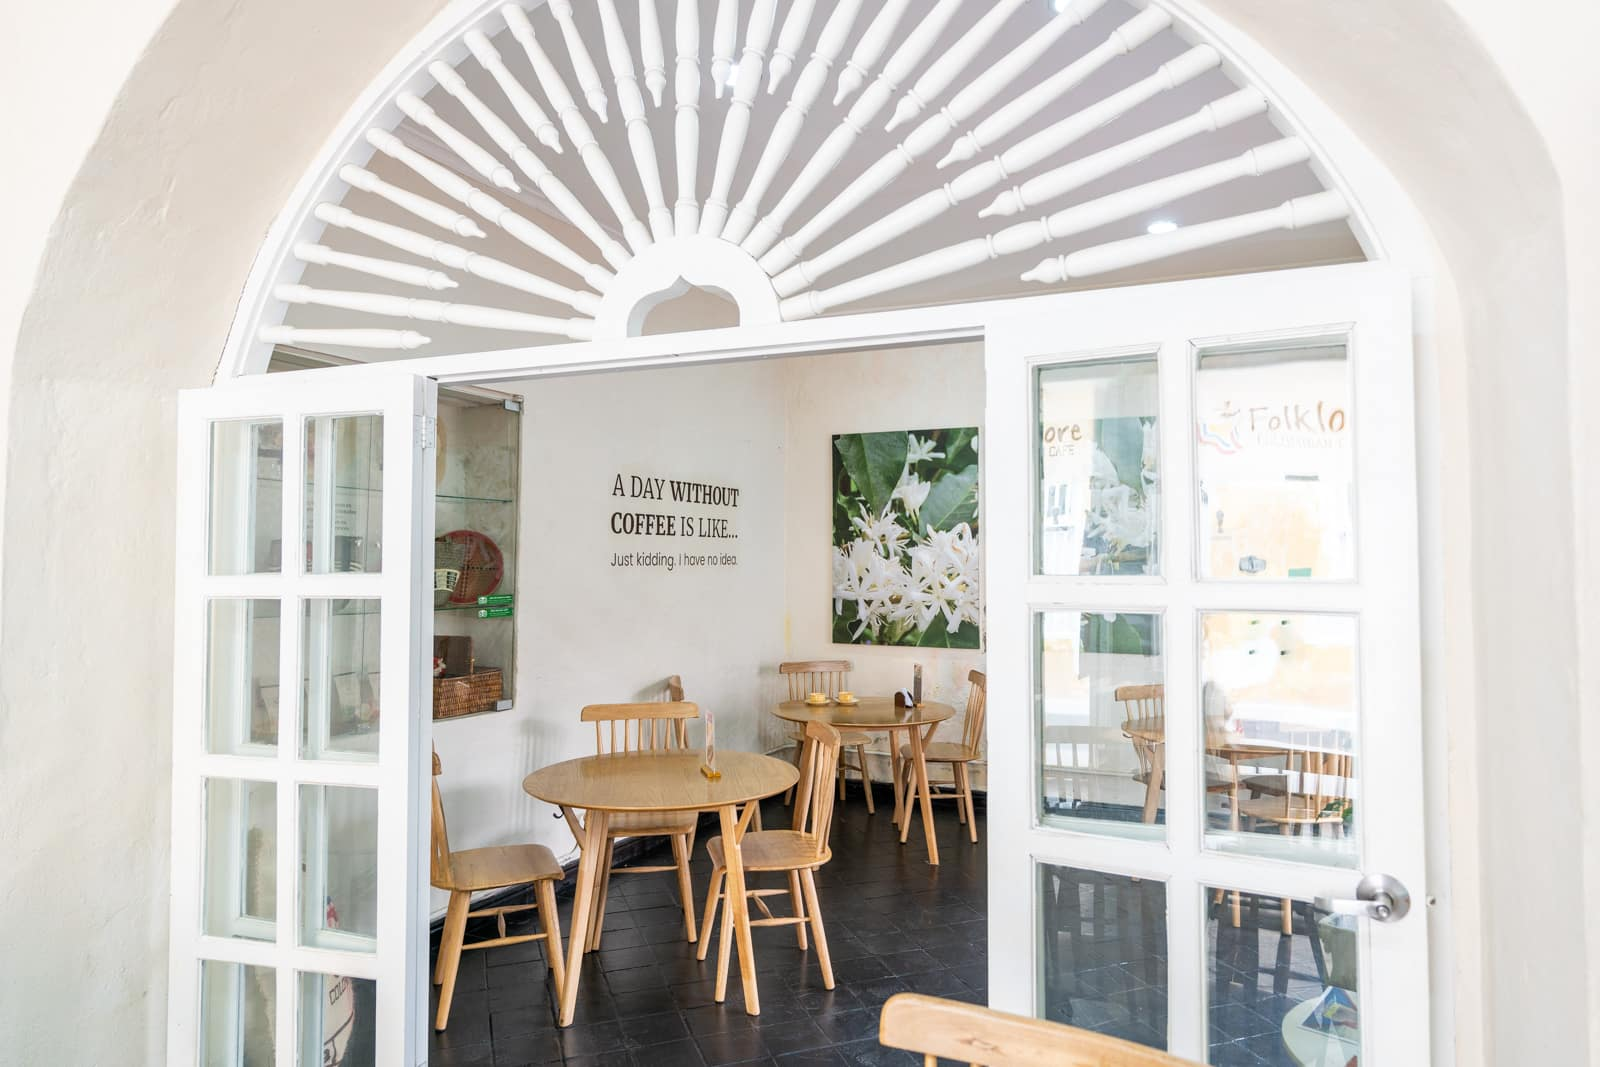 Cafes with wifi for digital nomads in Cartagena, Colombia - Interior of Folklore Colombian Cafe - Lost With Purpose travel blog